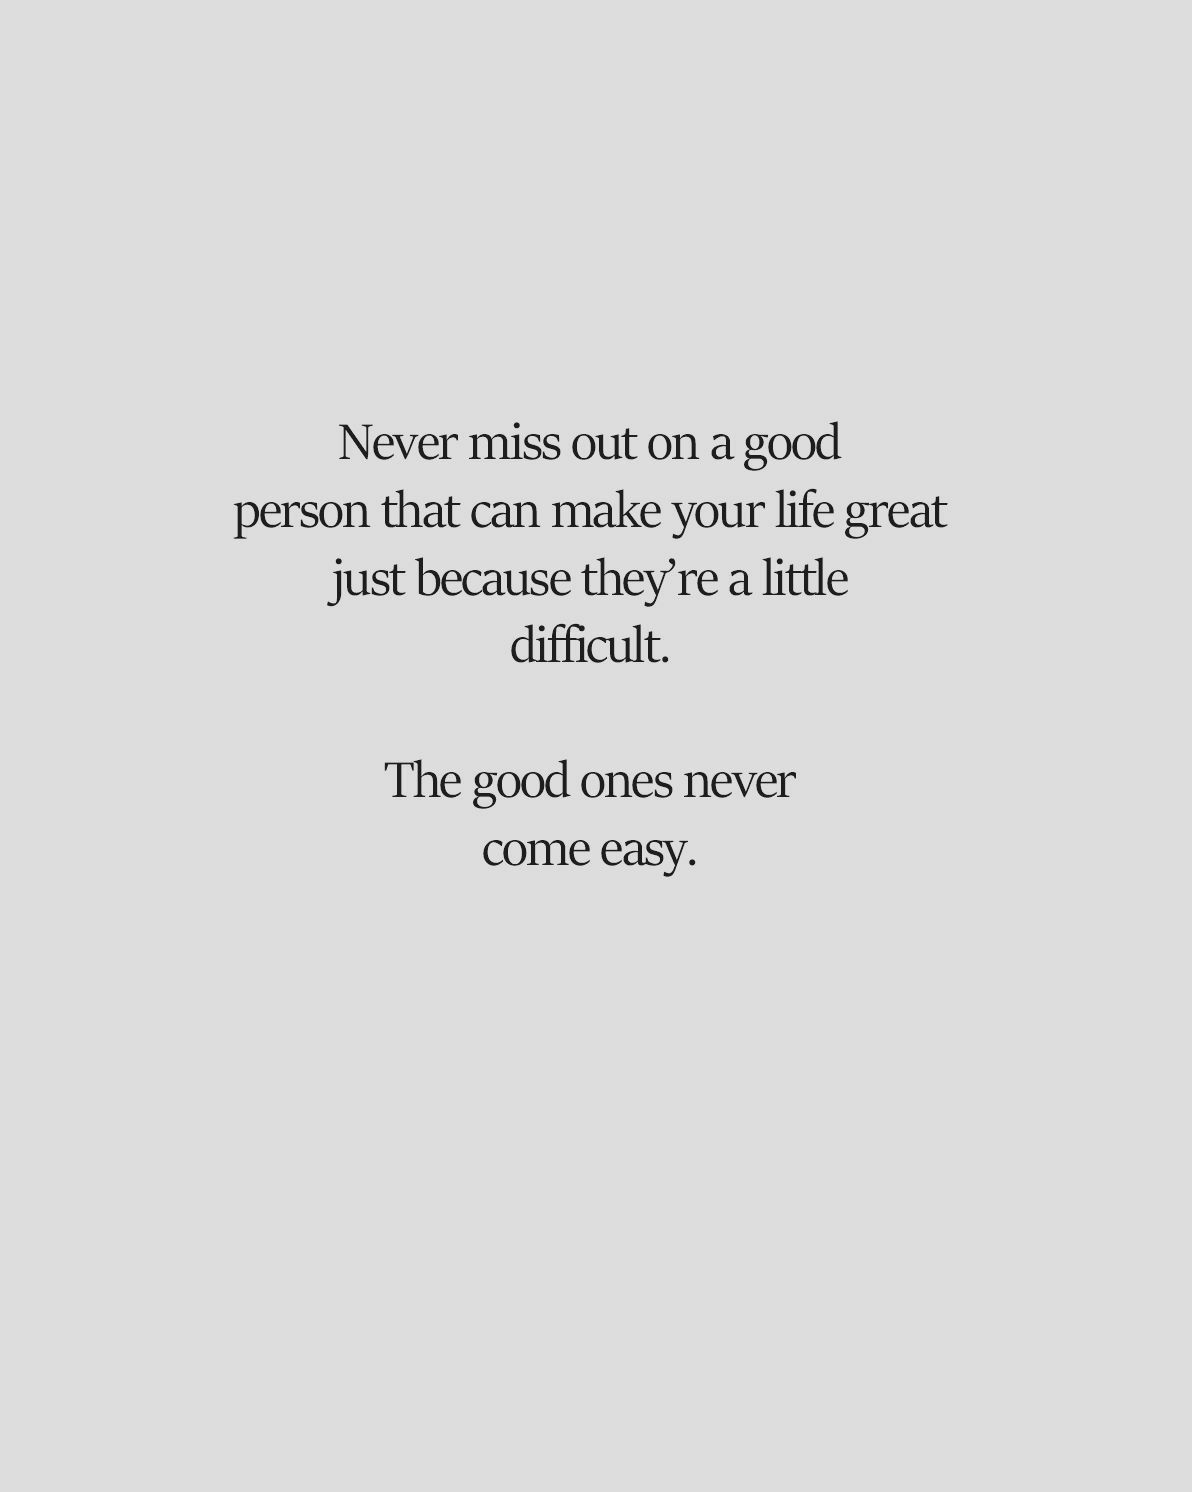 Pin by Rachel Conway on Quotes | Inspirational quotes ...